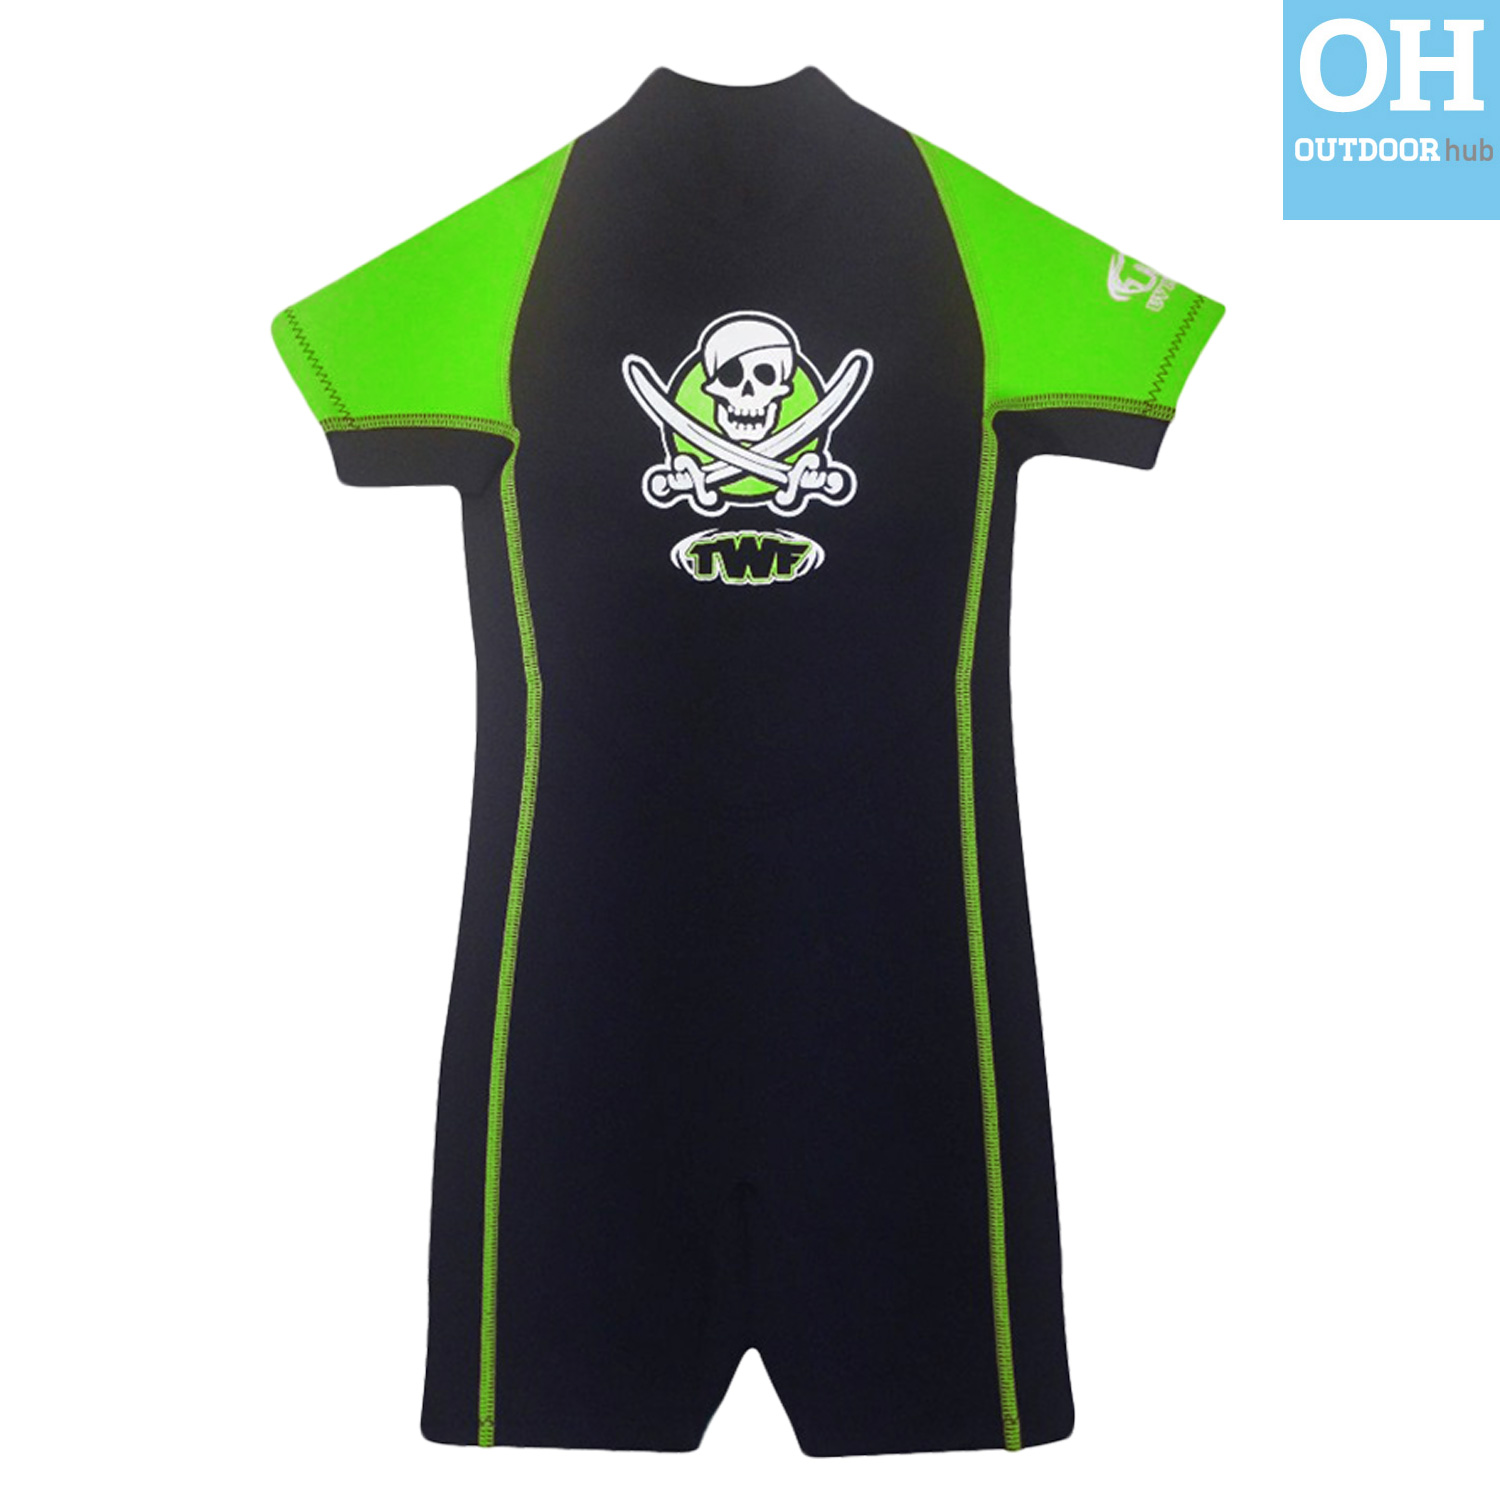 TWF-2mm-Kids-Shortie-Wetsuit-Childs-Shorty-Boys-Girls-Beach-Swim-Baby-Toddler thumbnail 13